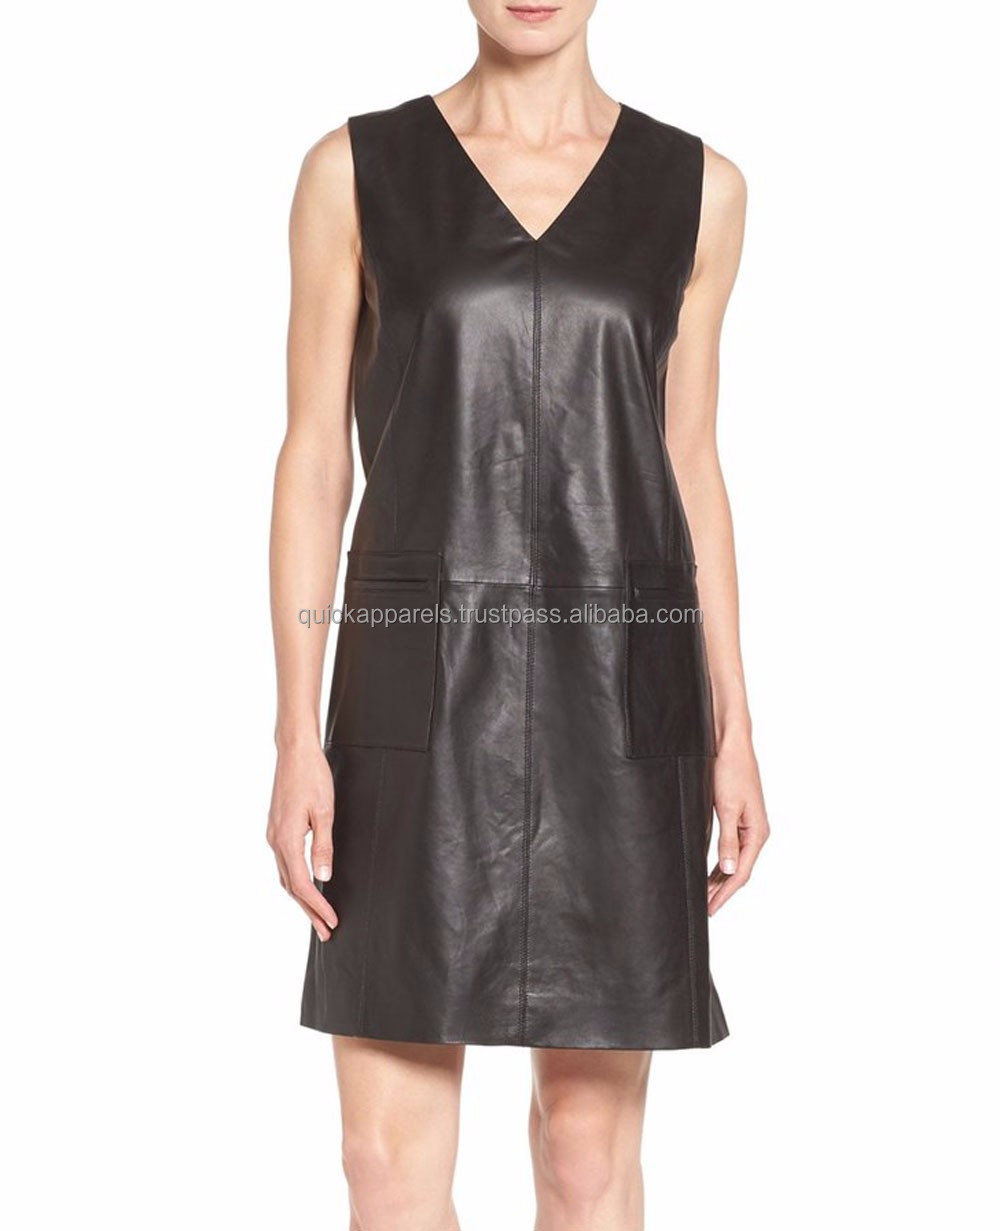 high-end quality women's lingerie tank top cheap faux leather dress